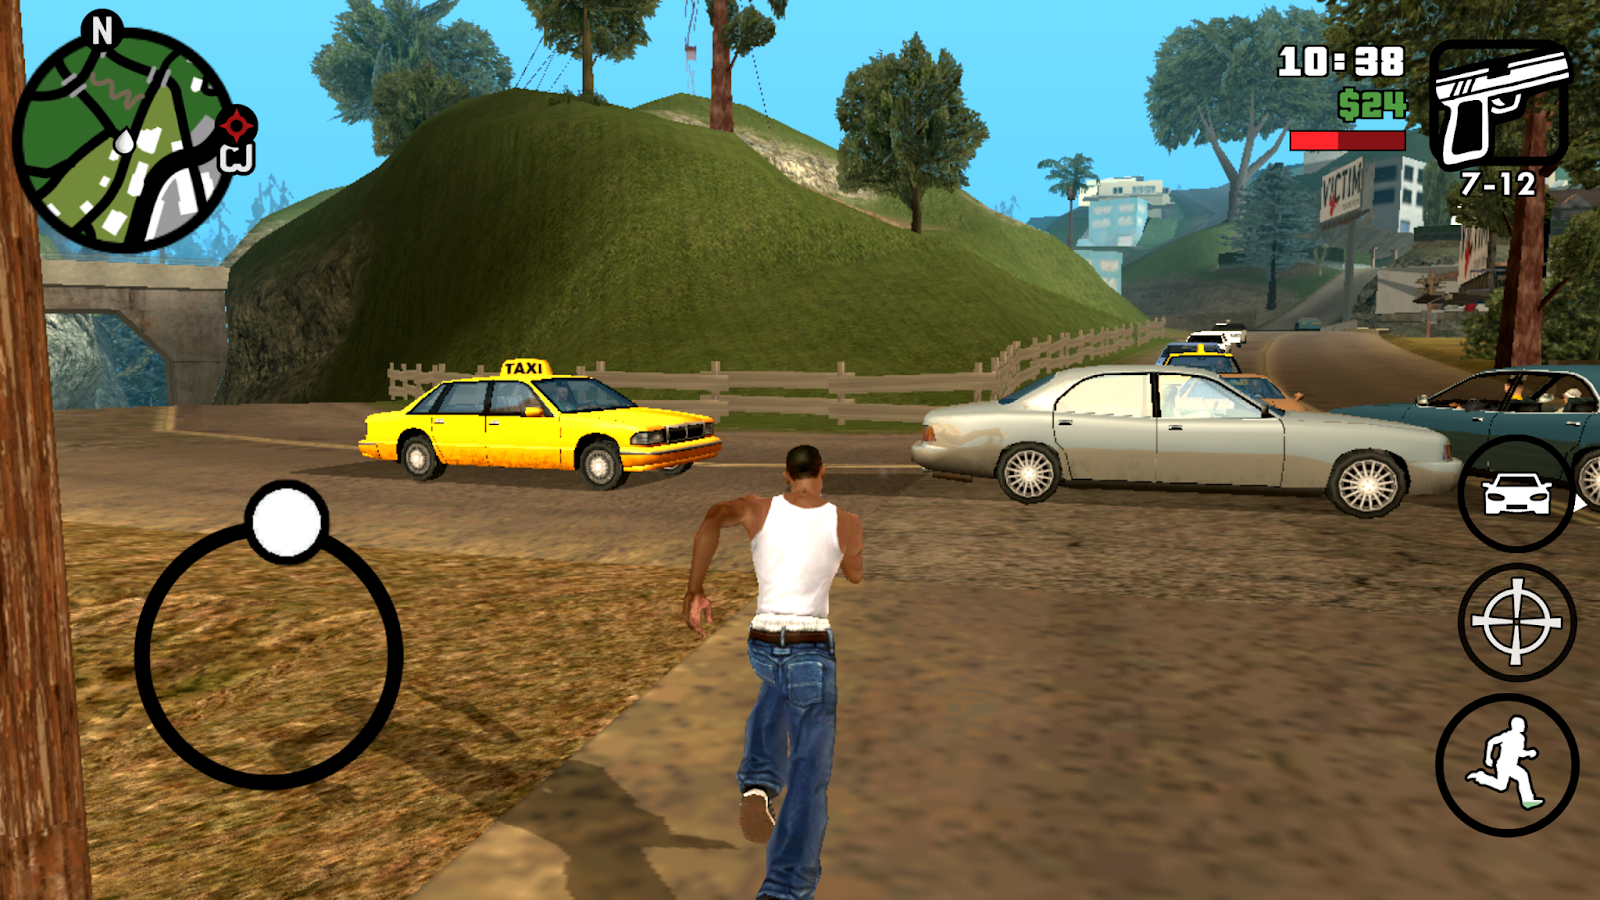 download gta san andreas android apk + data